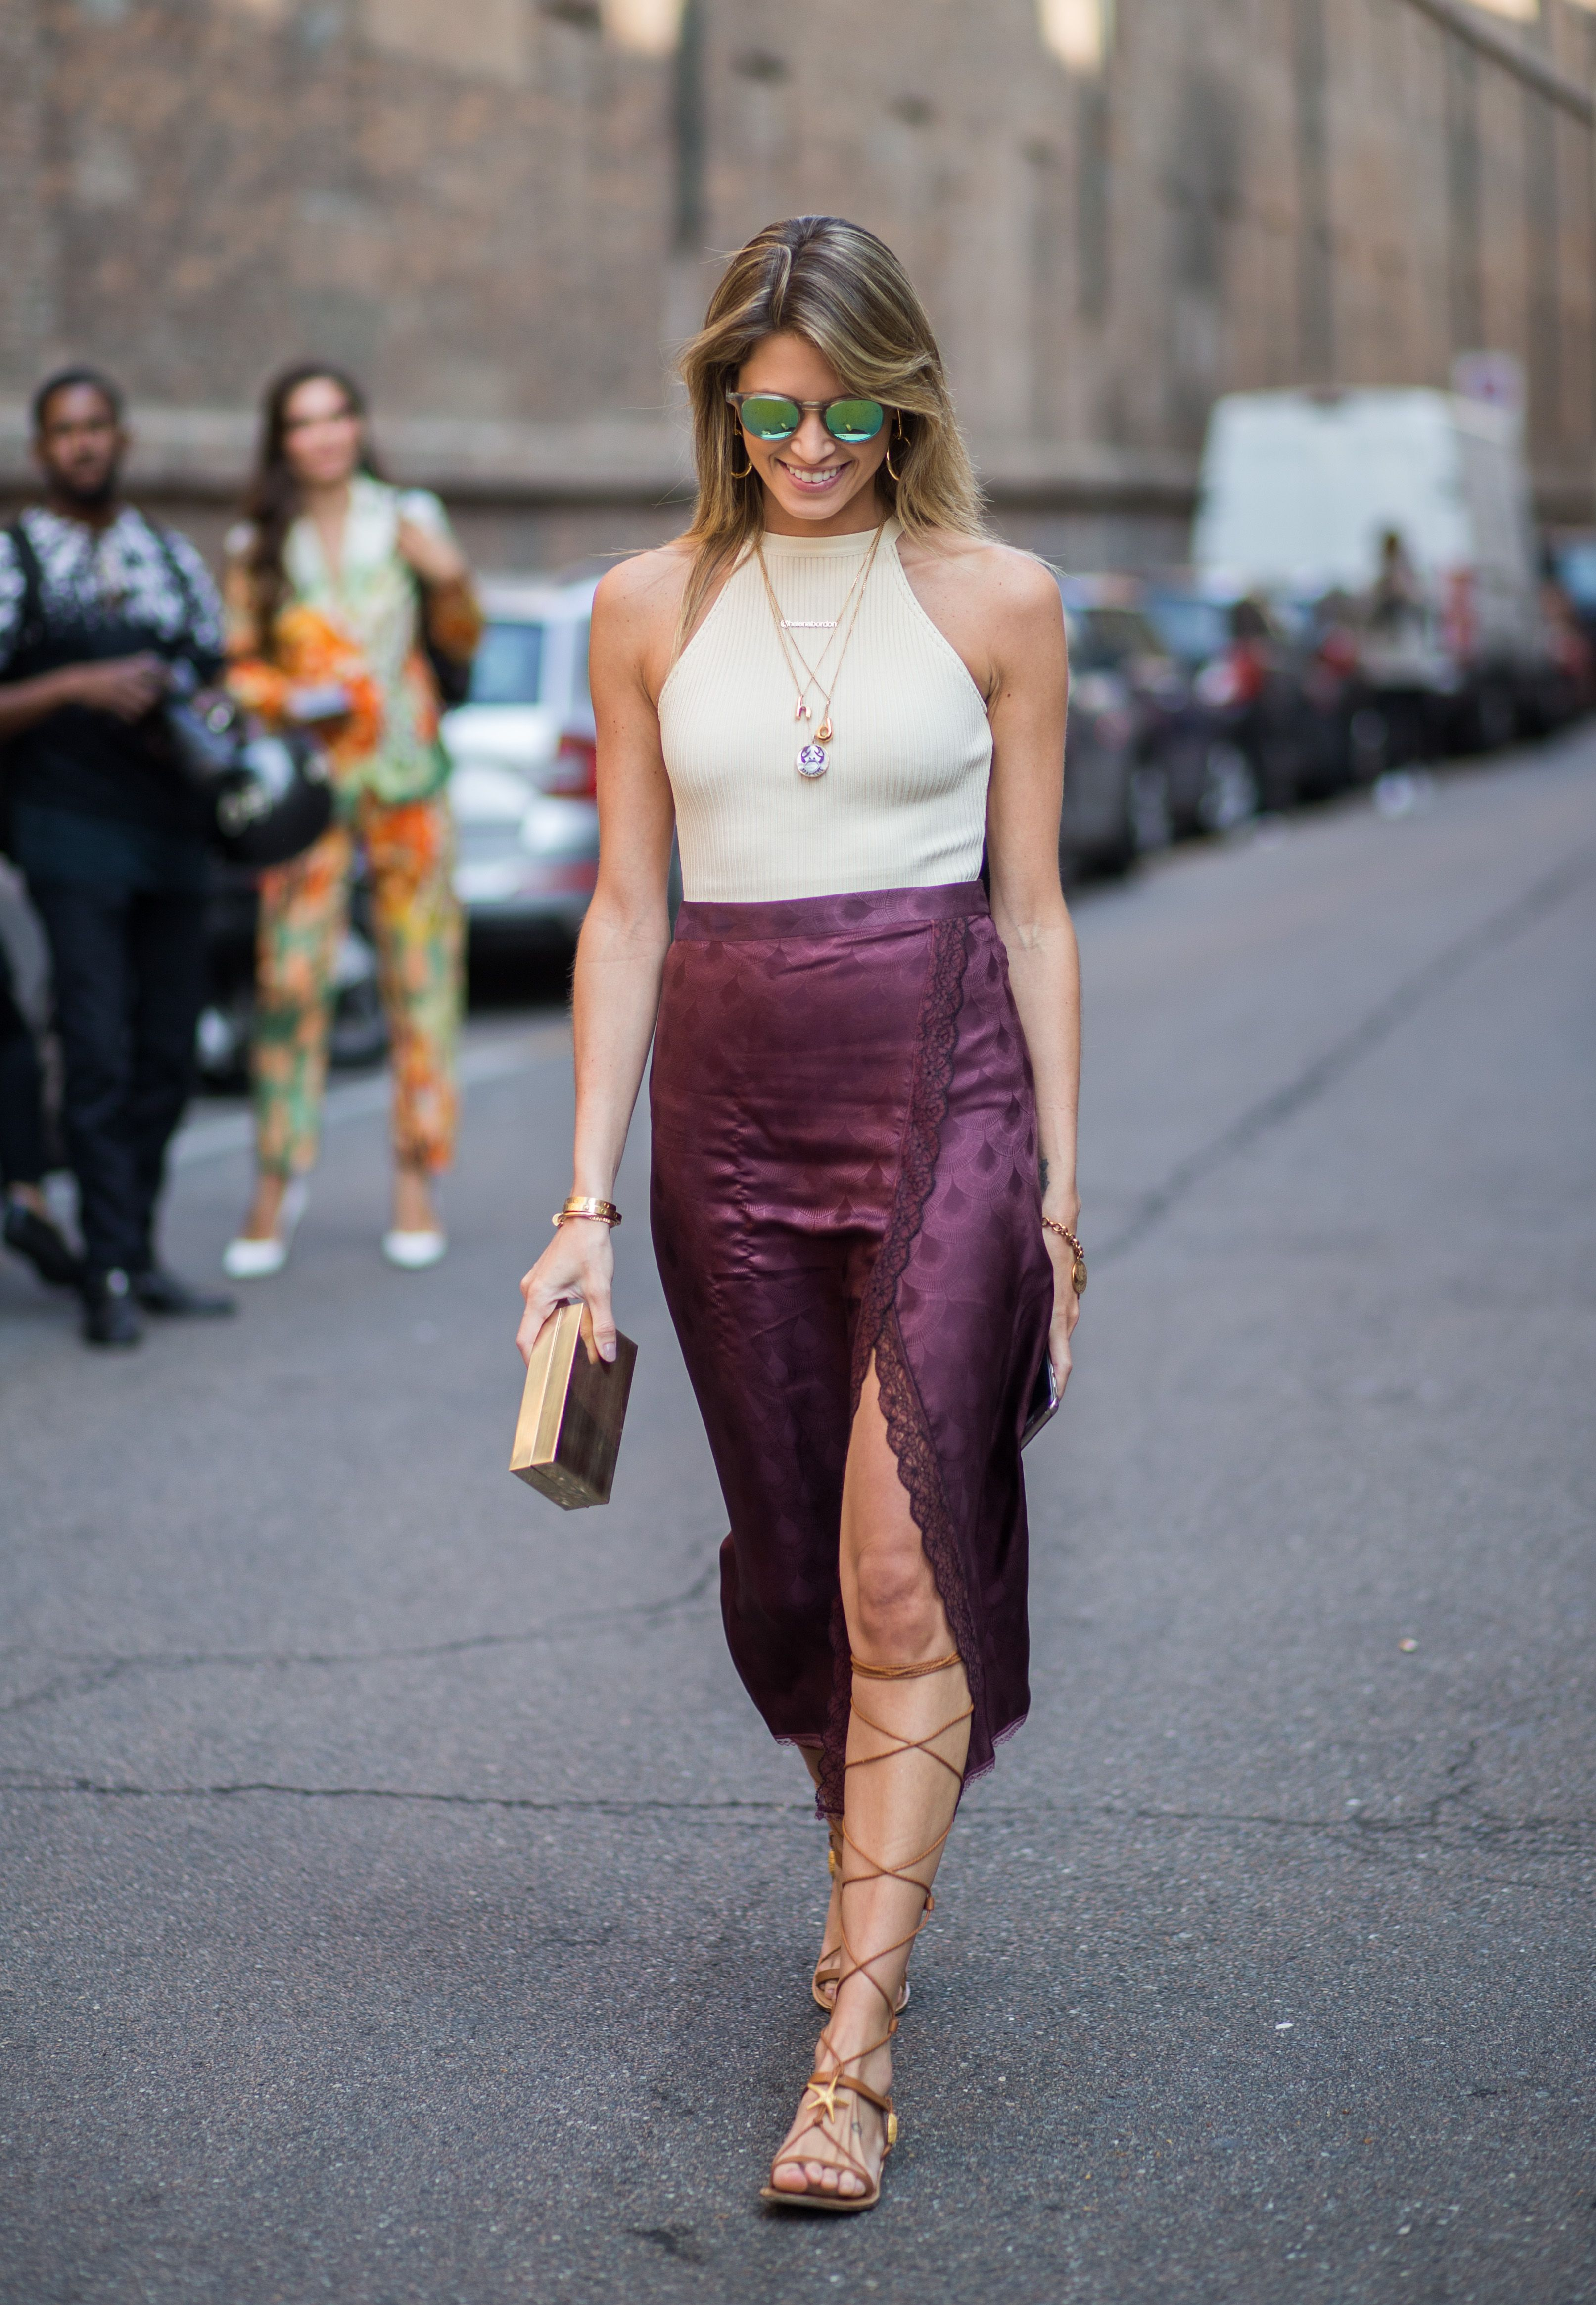 How to style a halter top courtesy of street style outfit inspiration from @Stylecaster   cream top, purple wrap skirt, gladiator sandals